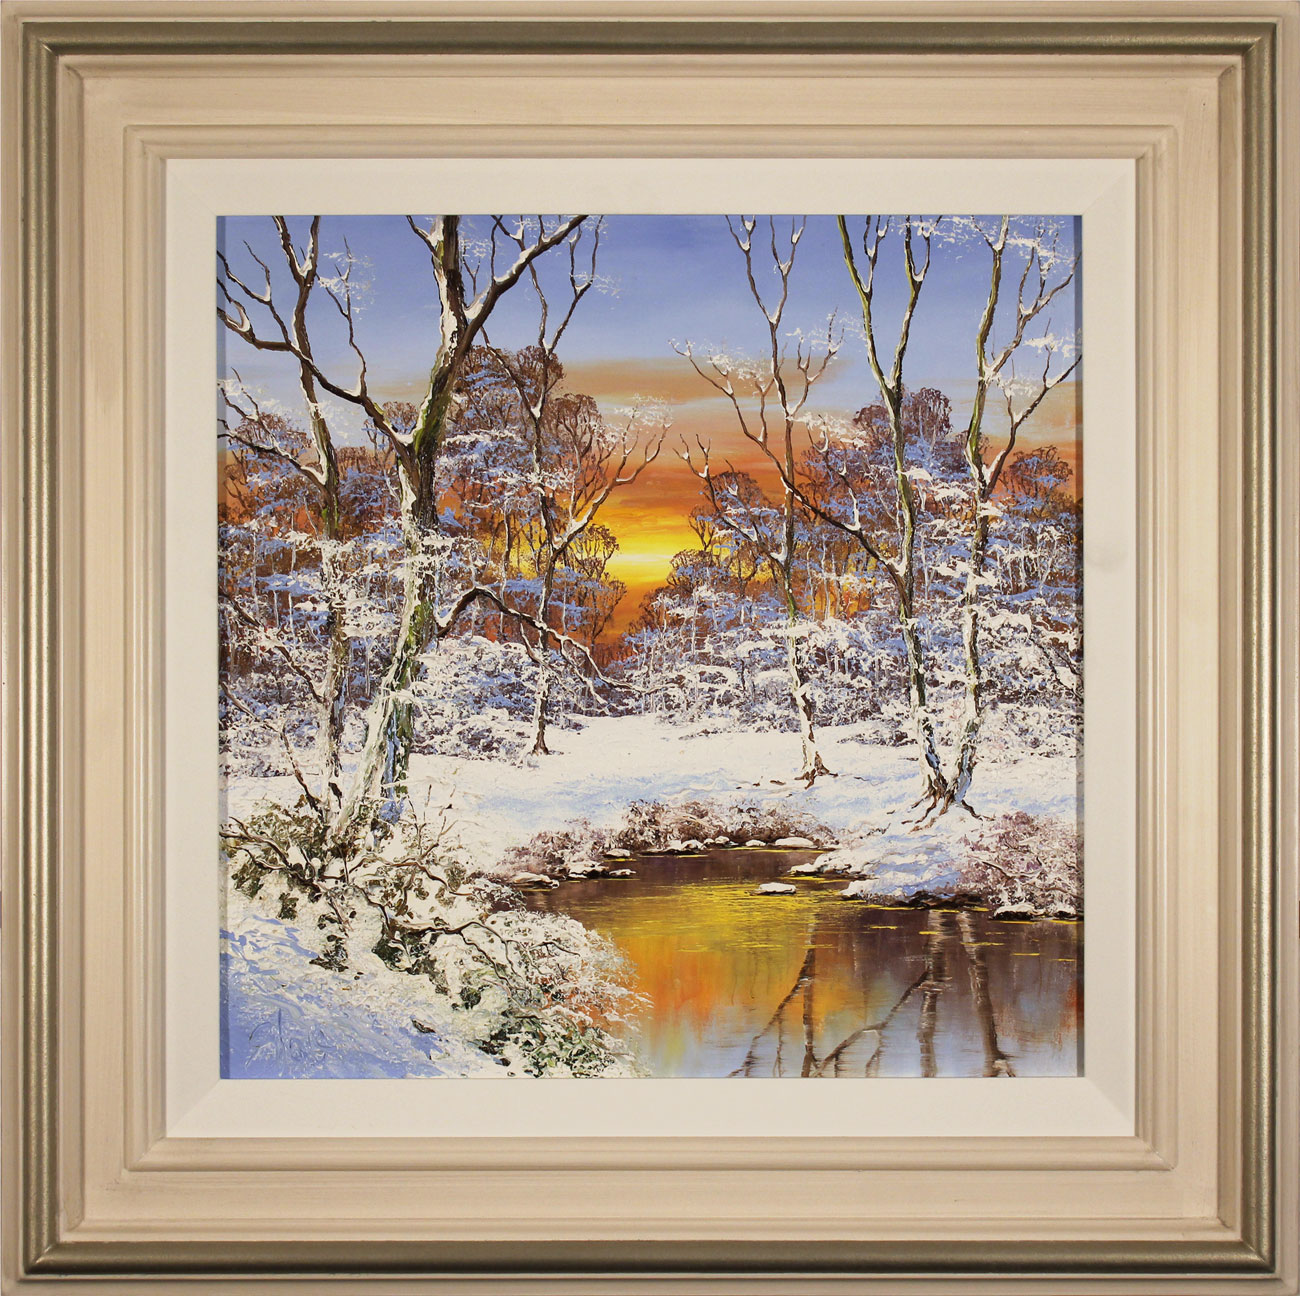 Terry Evans, Original oil painting on canvas, Winter Wood, click to enlarge